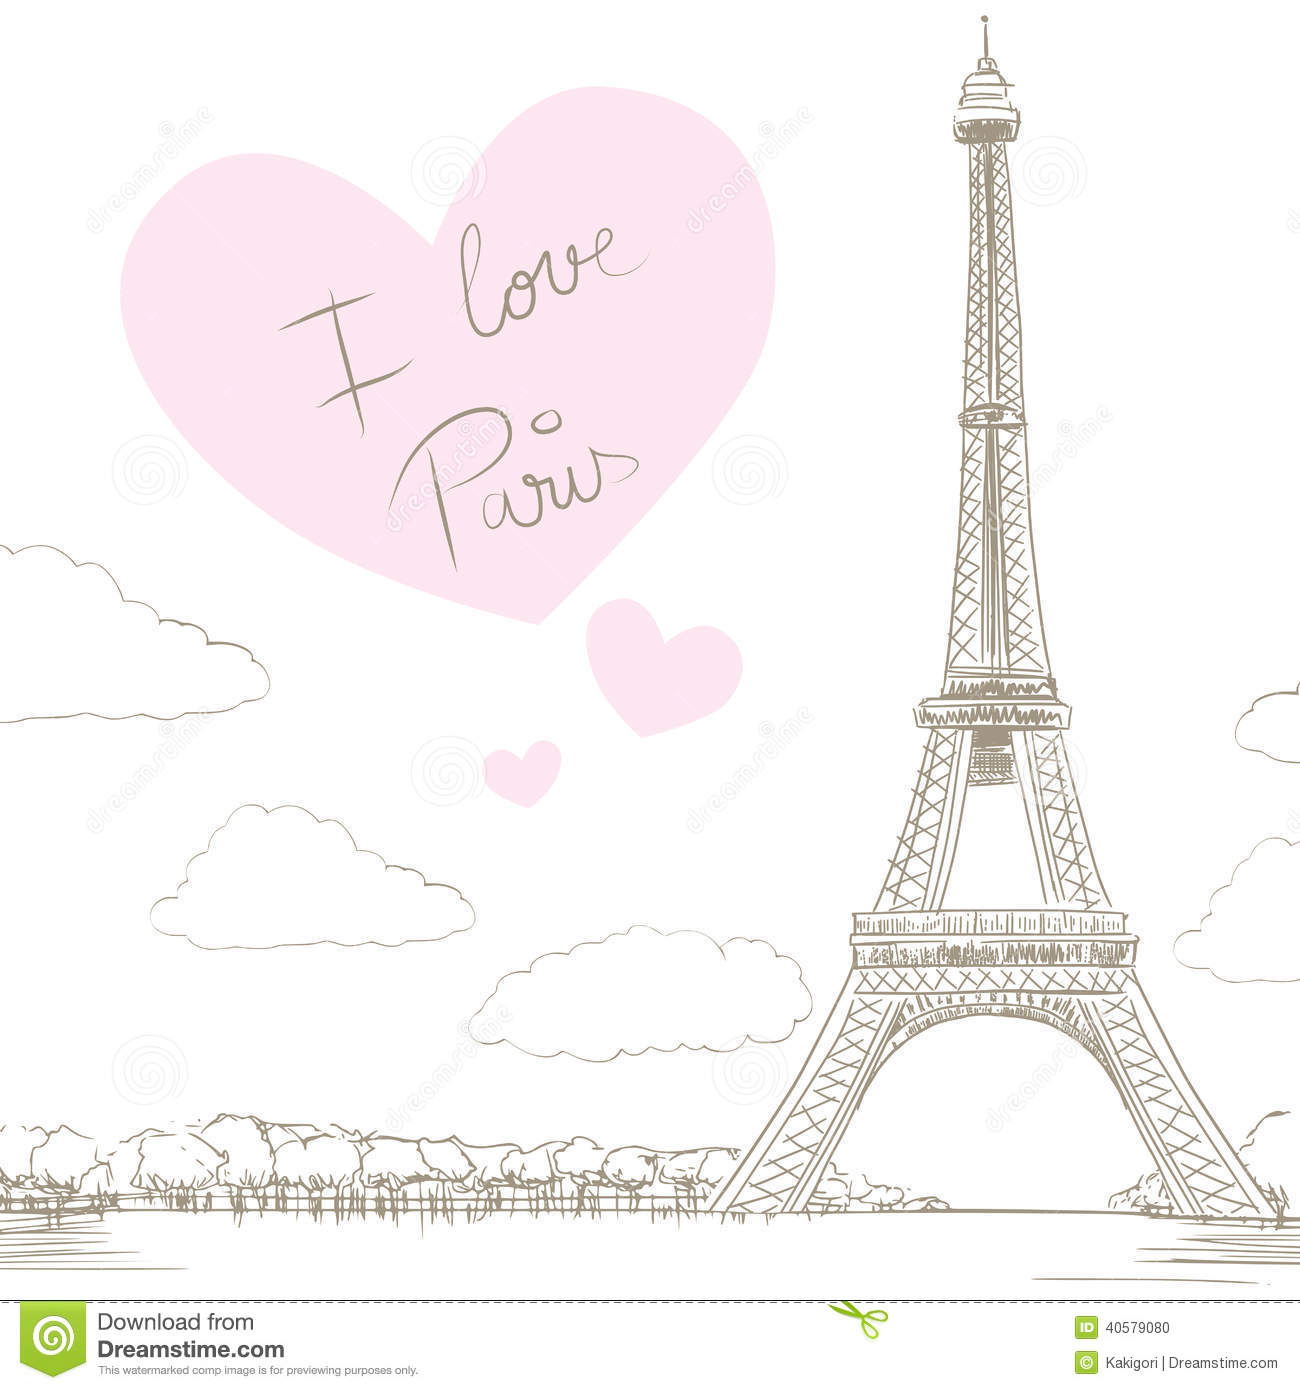 Eiffel Tower Background With Big Heart And Text Saying I Love Paris